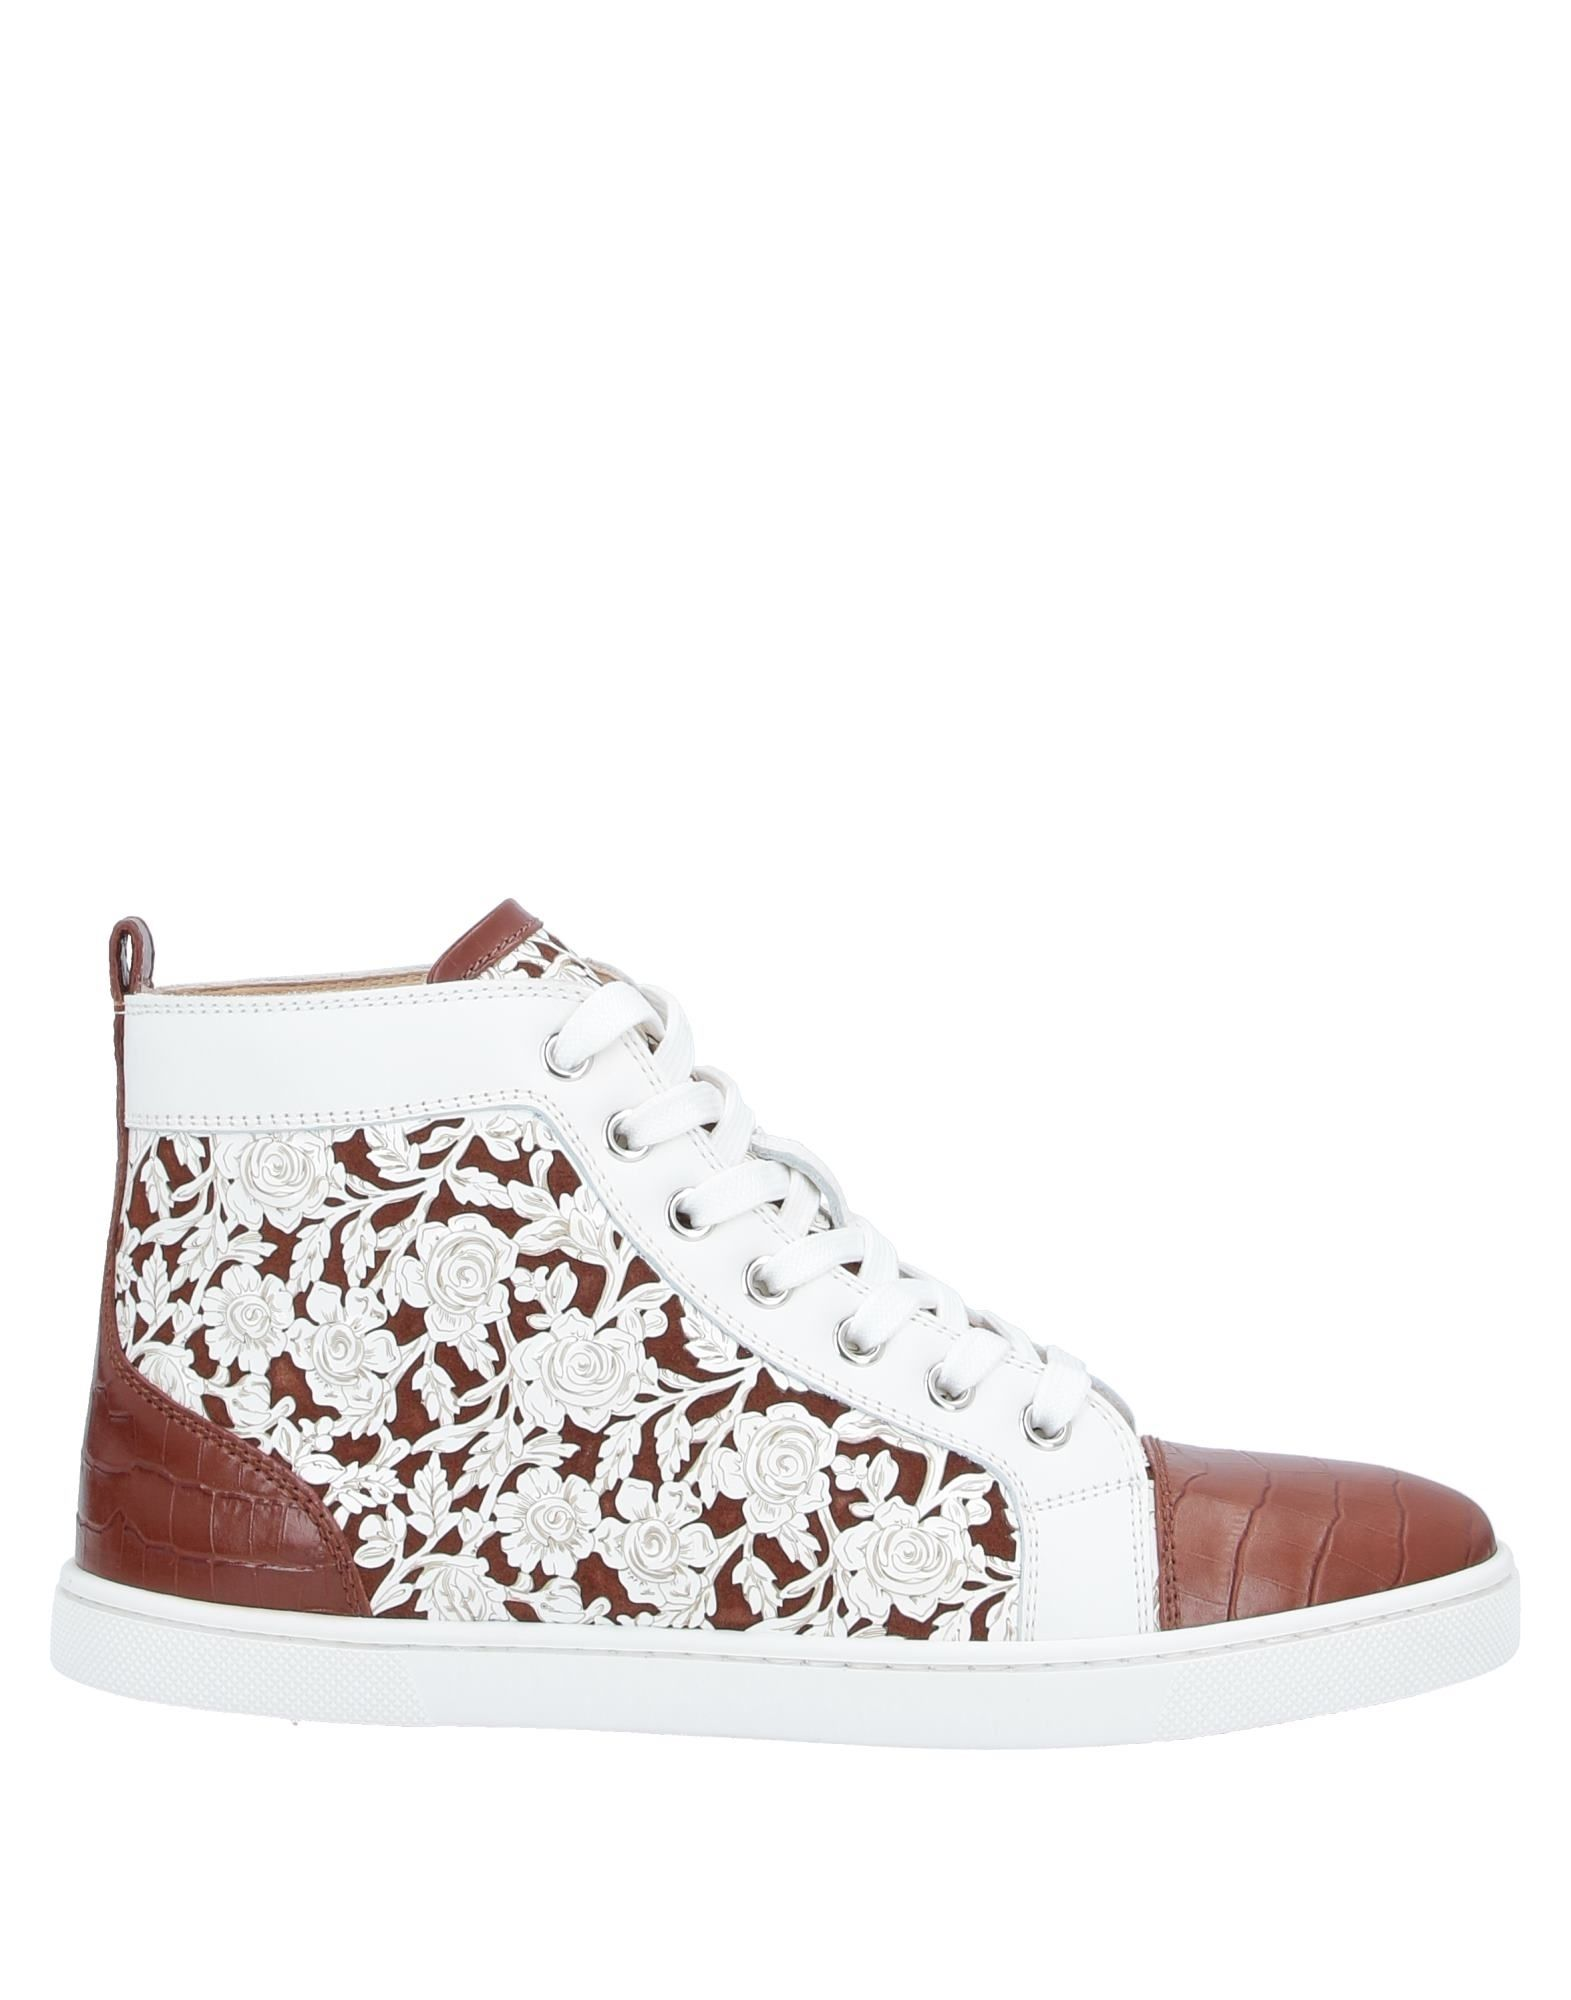 CHRISTIAN LOUBOUTIN Sneakers. leather, crocodile print, metal applications, logo, floral design, laces, round toeline, flat, leather lining, rubber cleated sole, contains non-textile parts of animal origin, small sized. Soft Leather